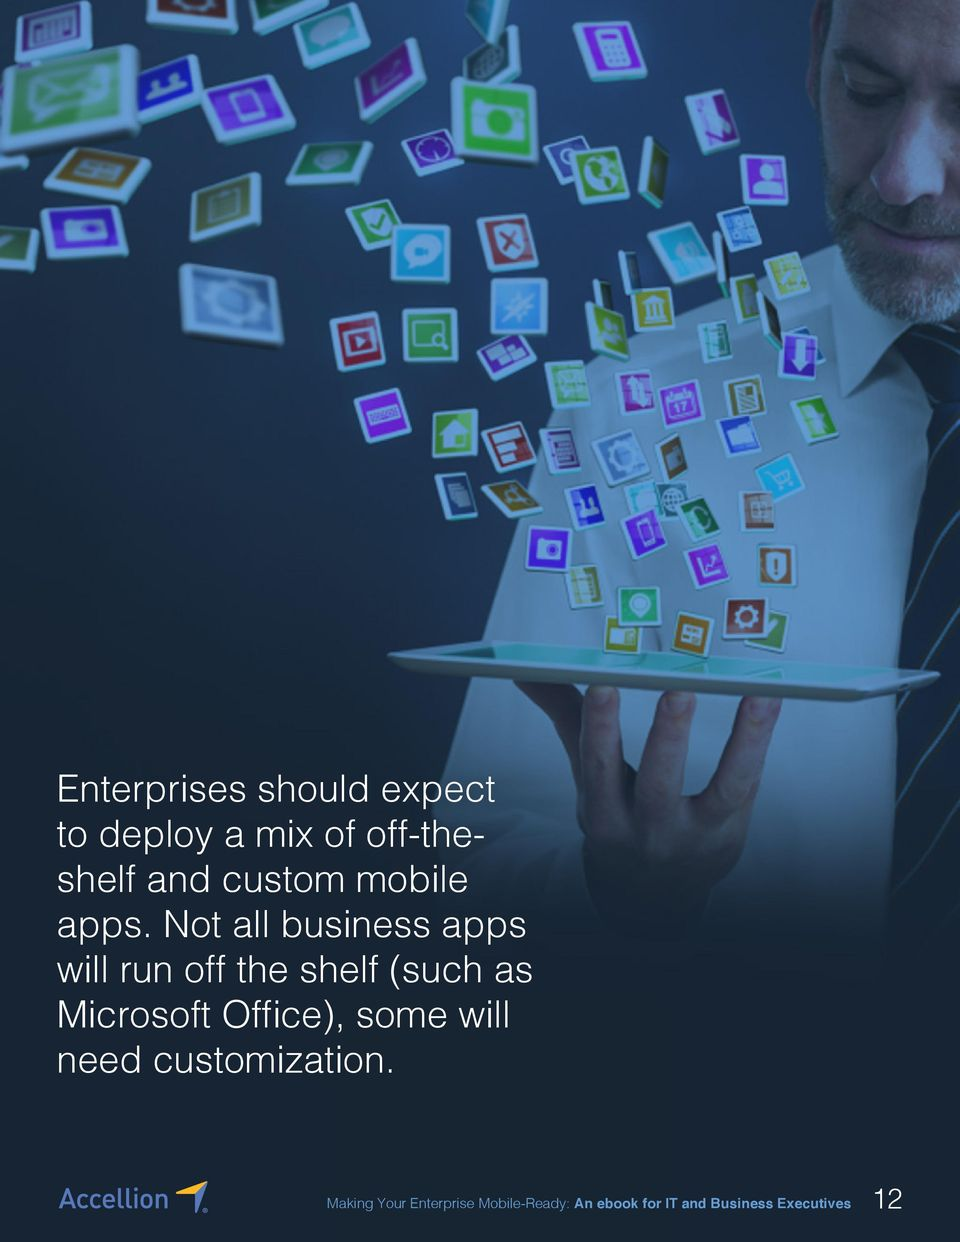 Not all business apps will run off the shelf (such as Microsoft